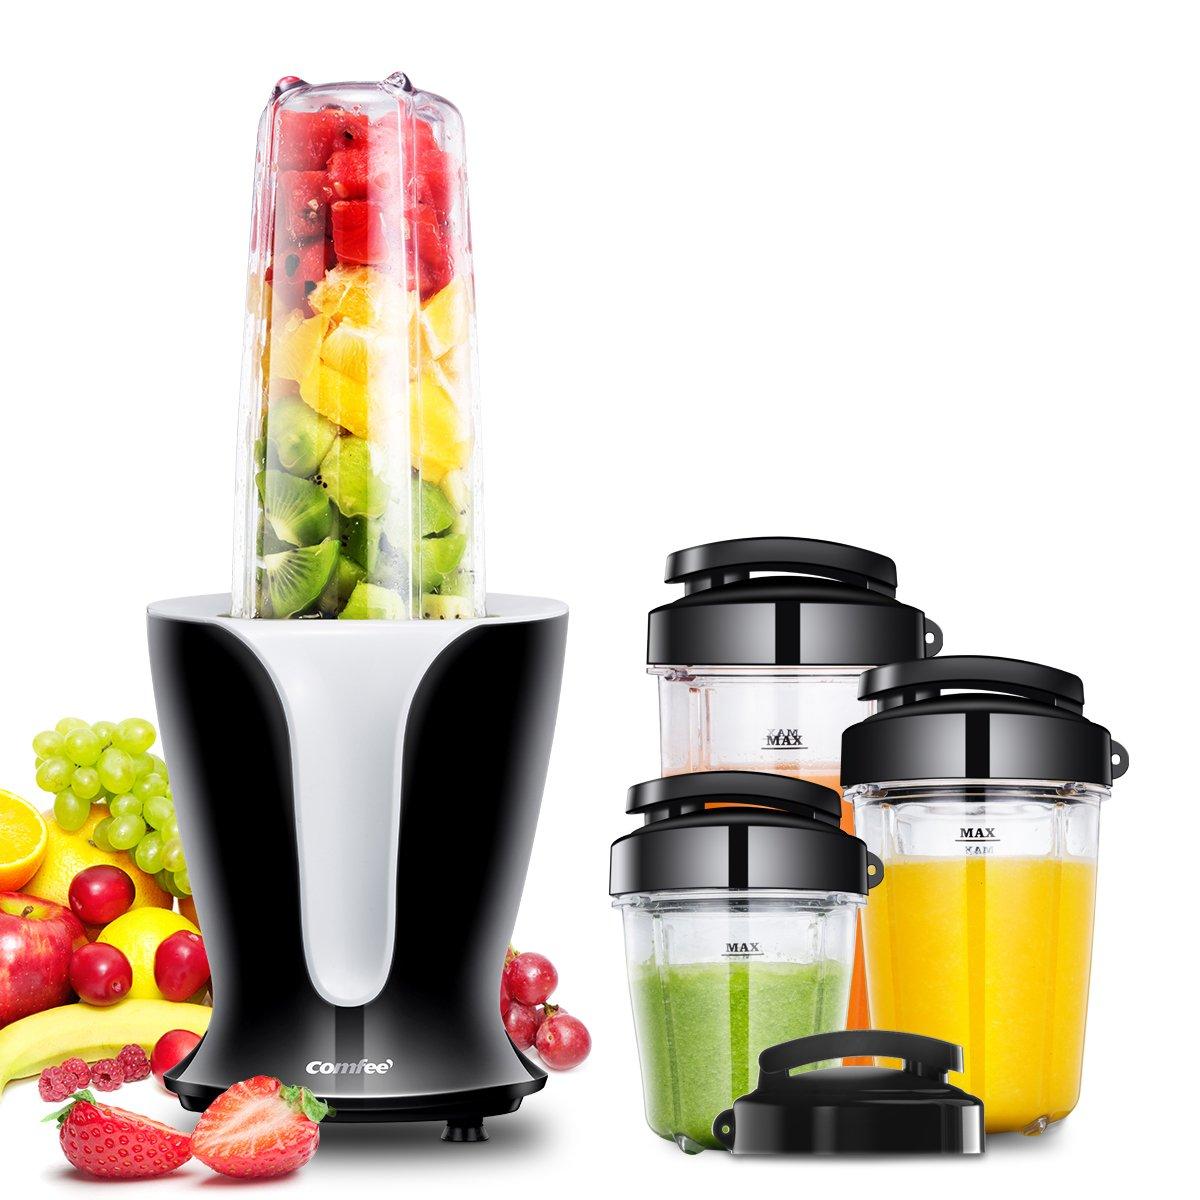 Mixer Grinder, Smoothie Blender, Personal Shakes Blender, 18000RPM High Speed Motor, Detachable Blade, 4 Tritan Travel Cups 32oz/24oz/18oz/12oz, 900W by Comfee by COMFEE'